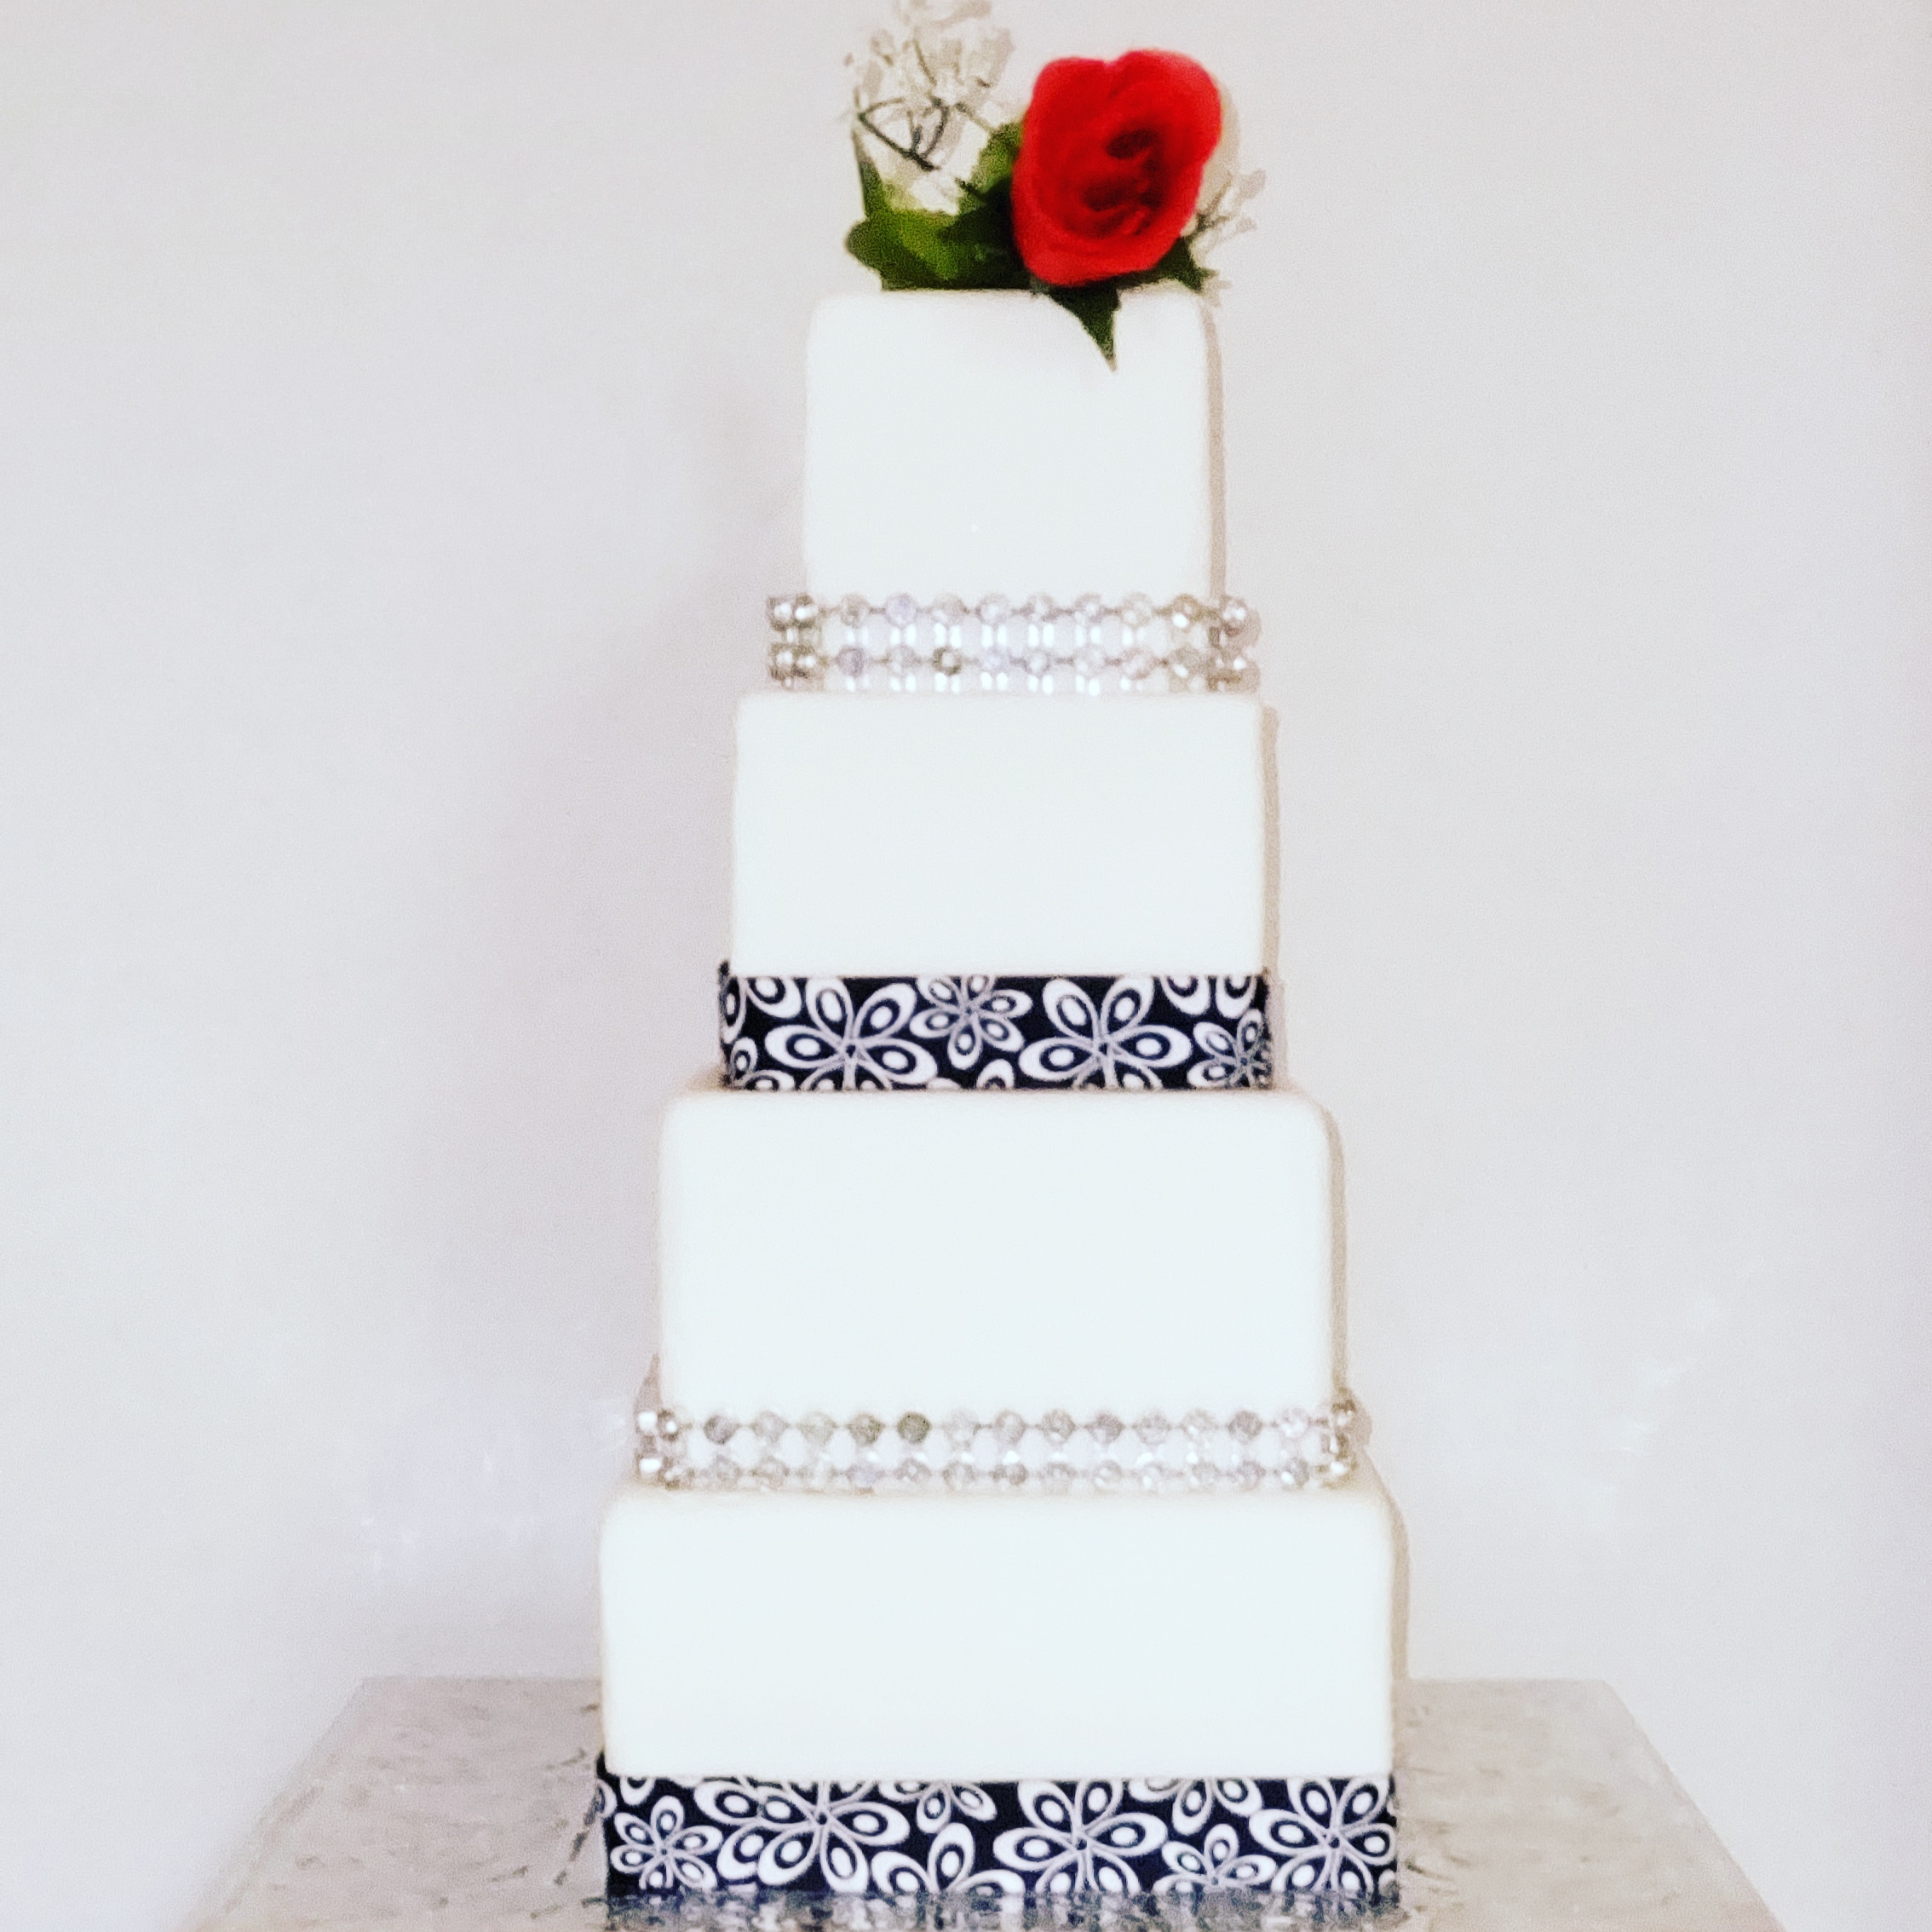 Square 4 tier wedding cake